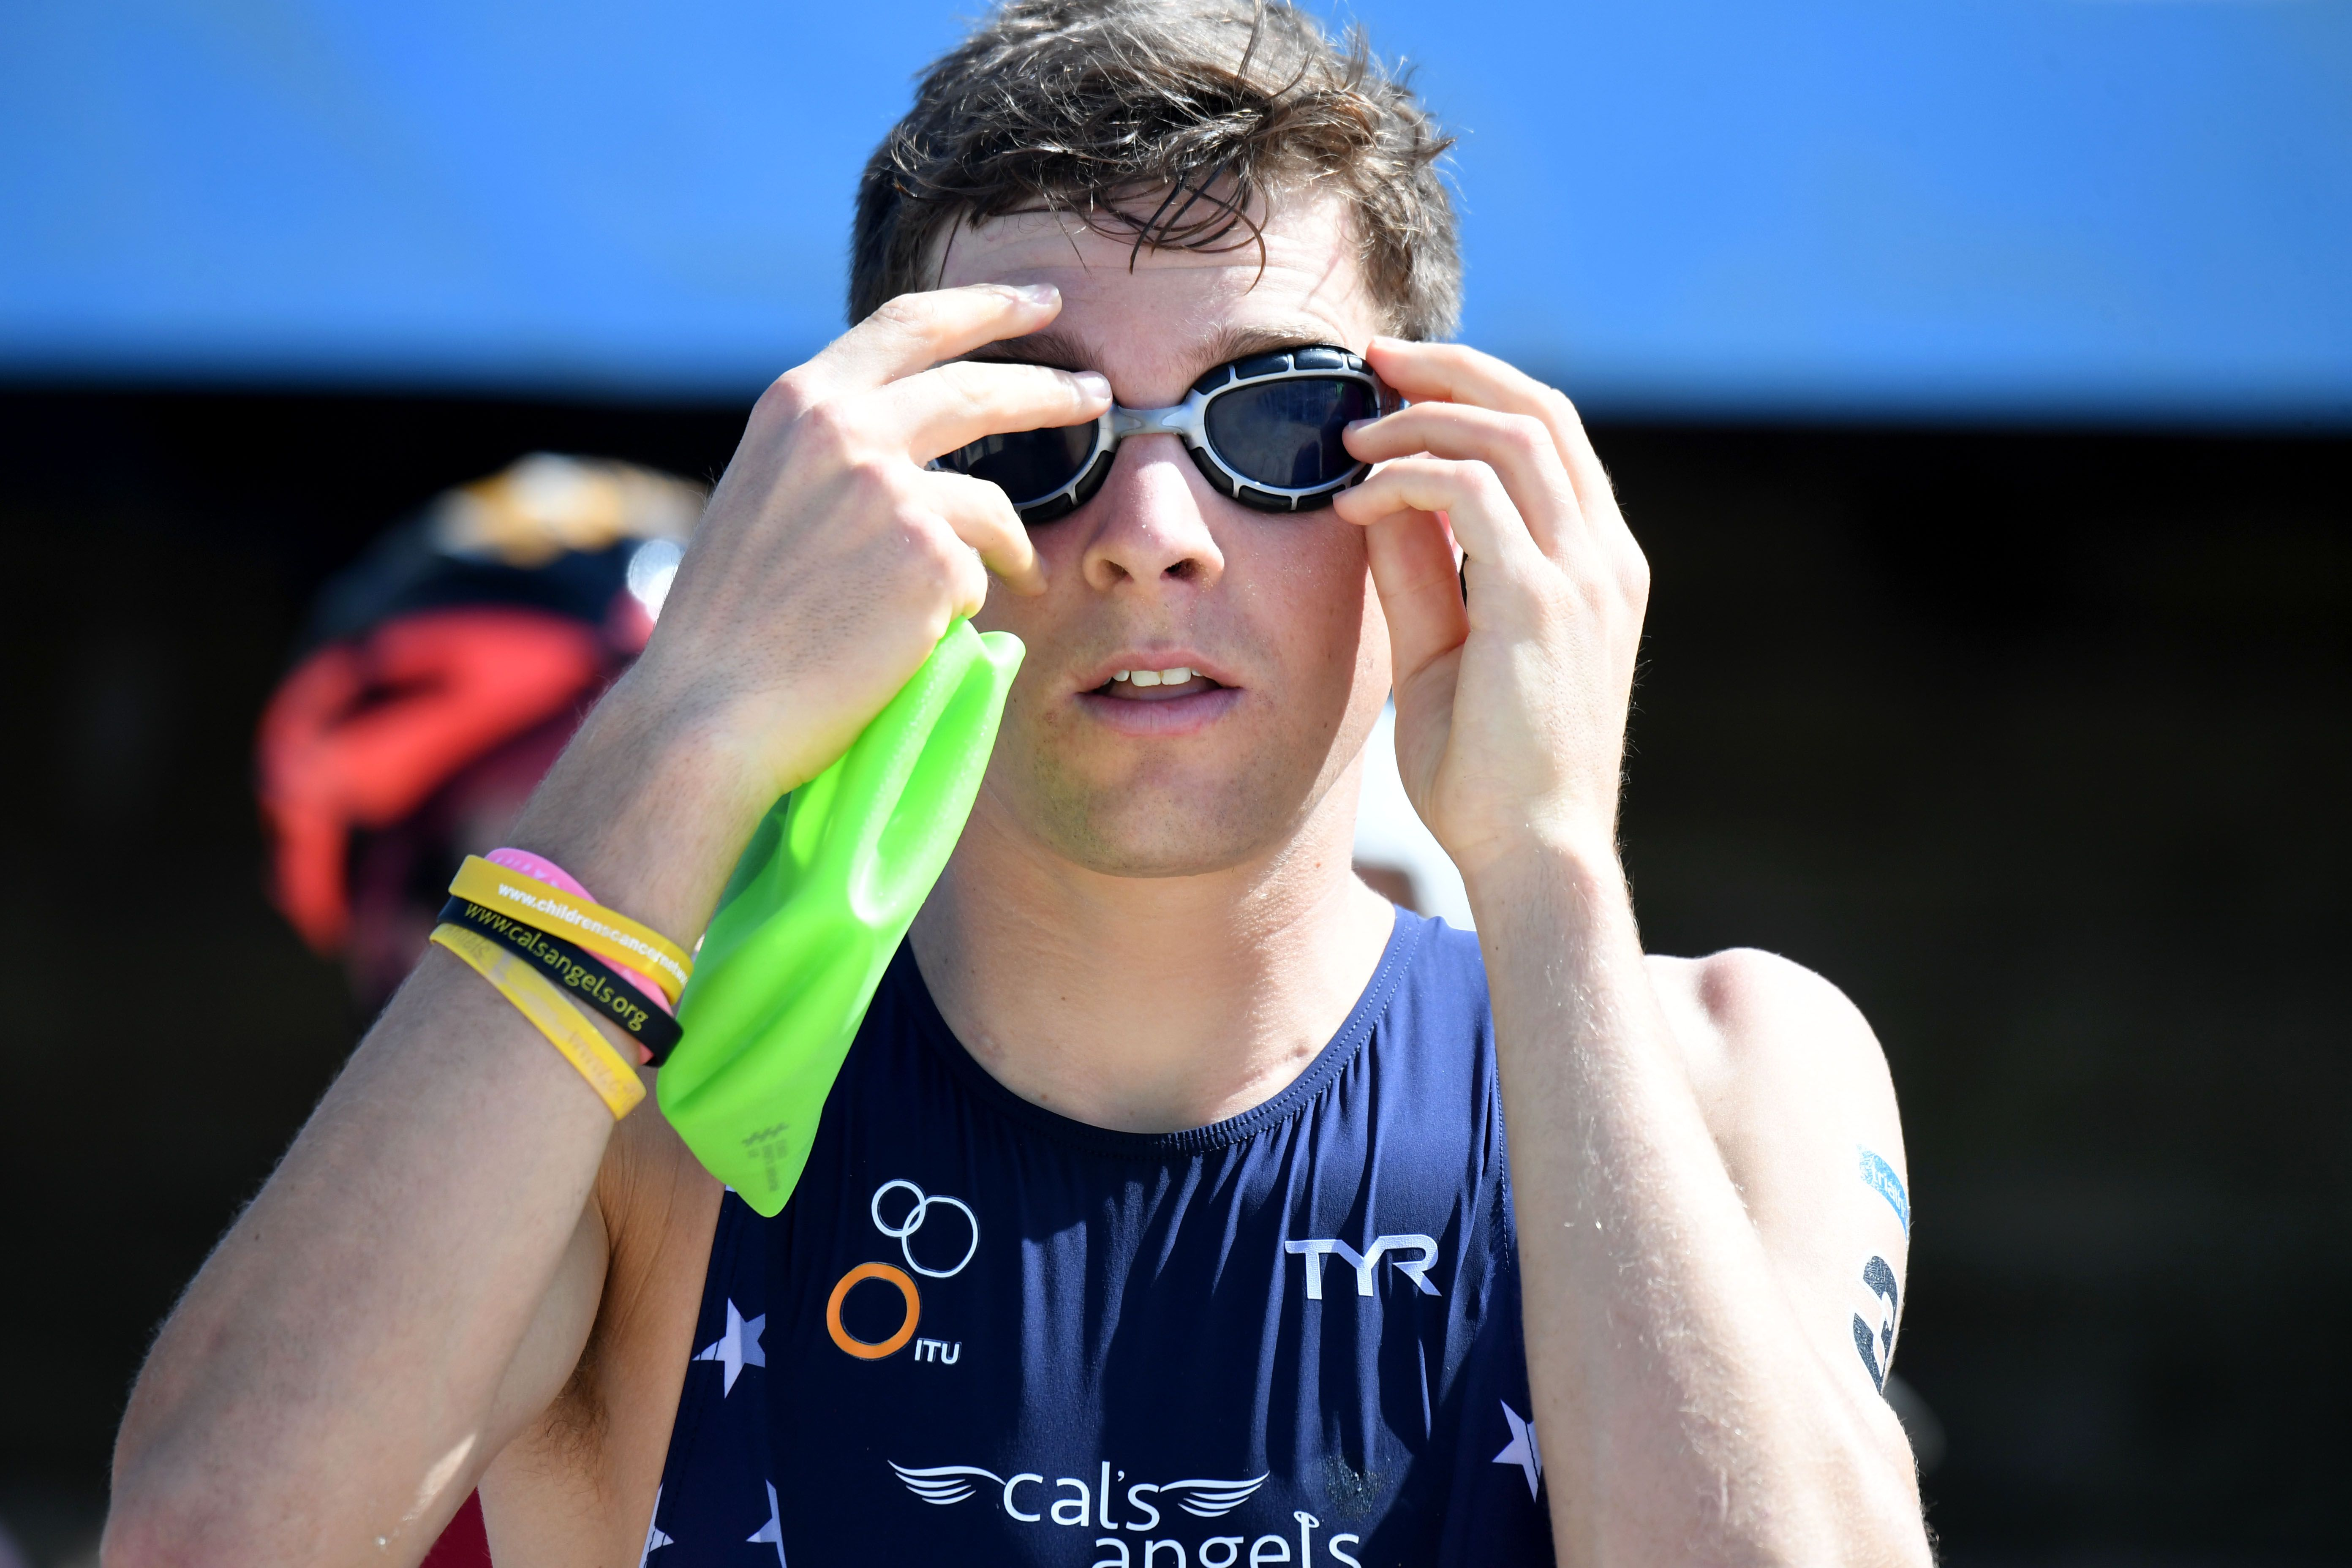 Kevin McDowell at the ITU World Cup Triathlon in 2017 in Australia. Photo: Delly Carr/Getty Images